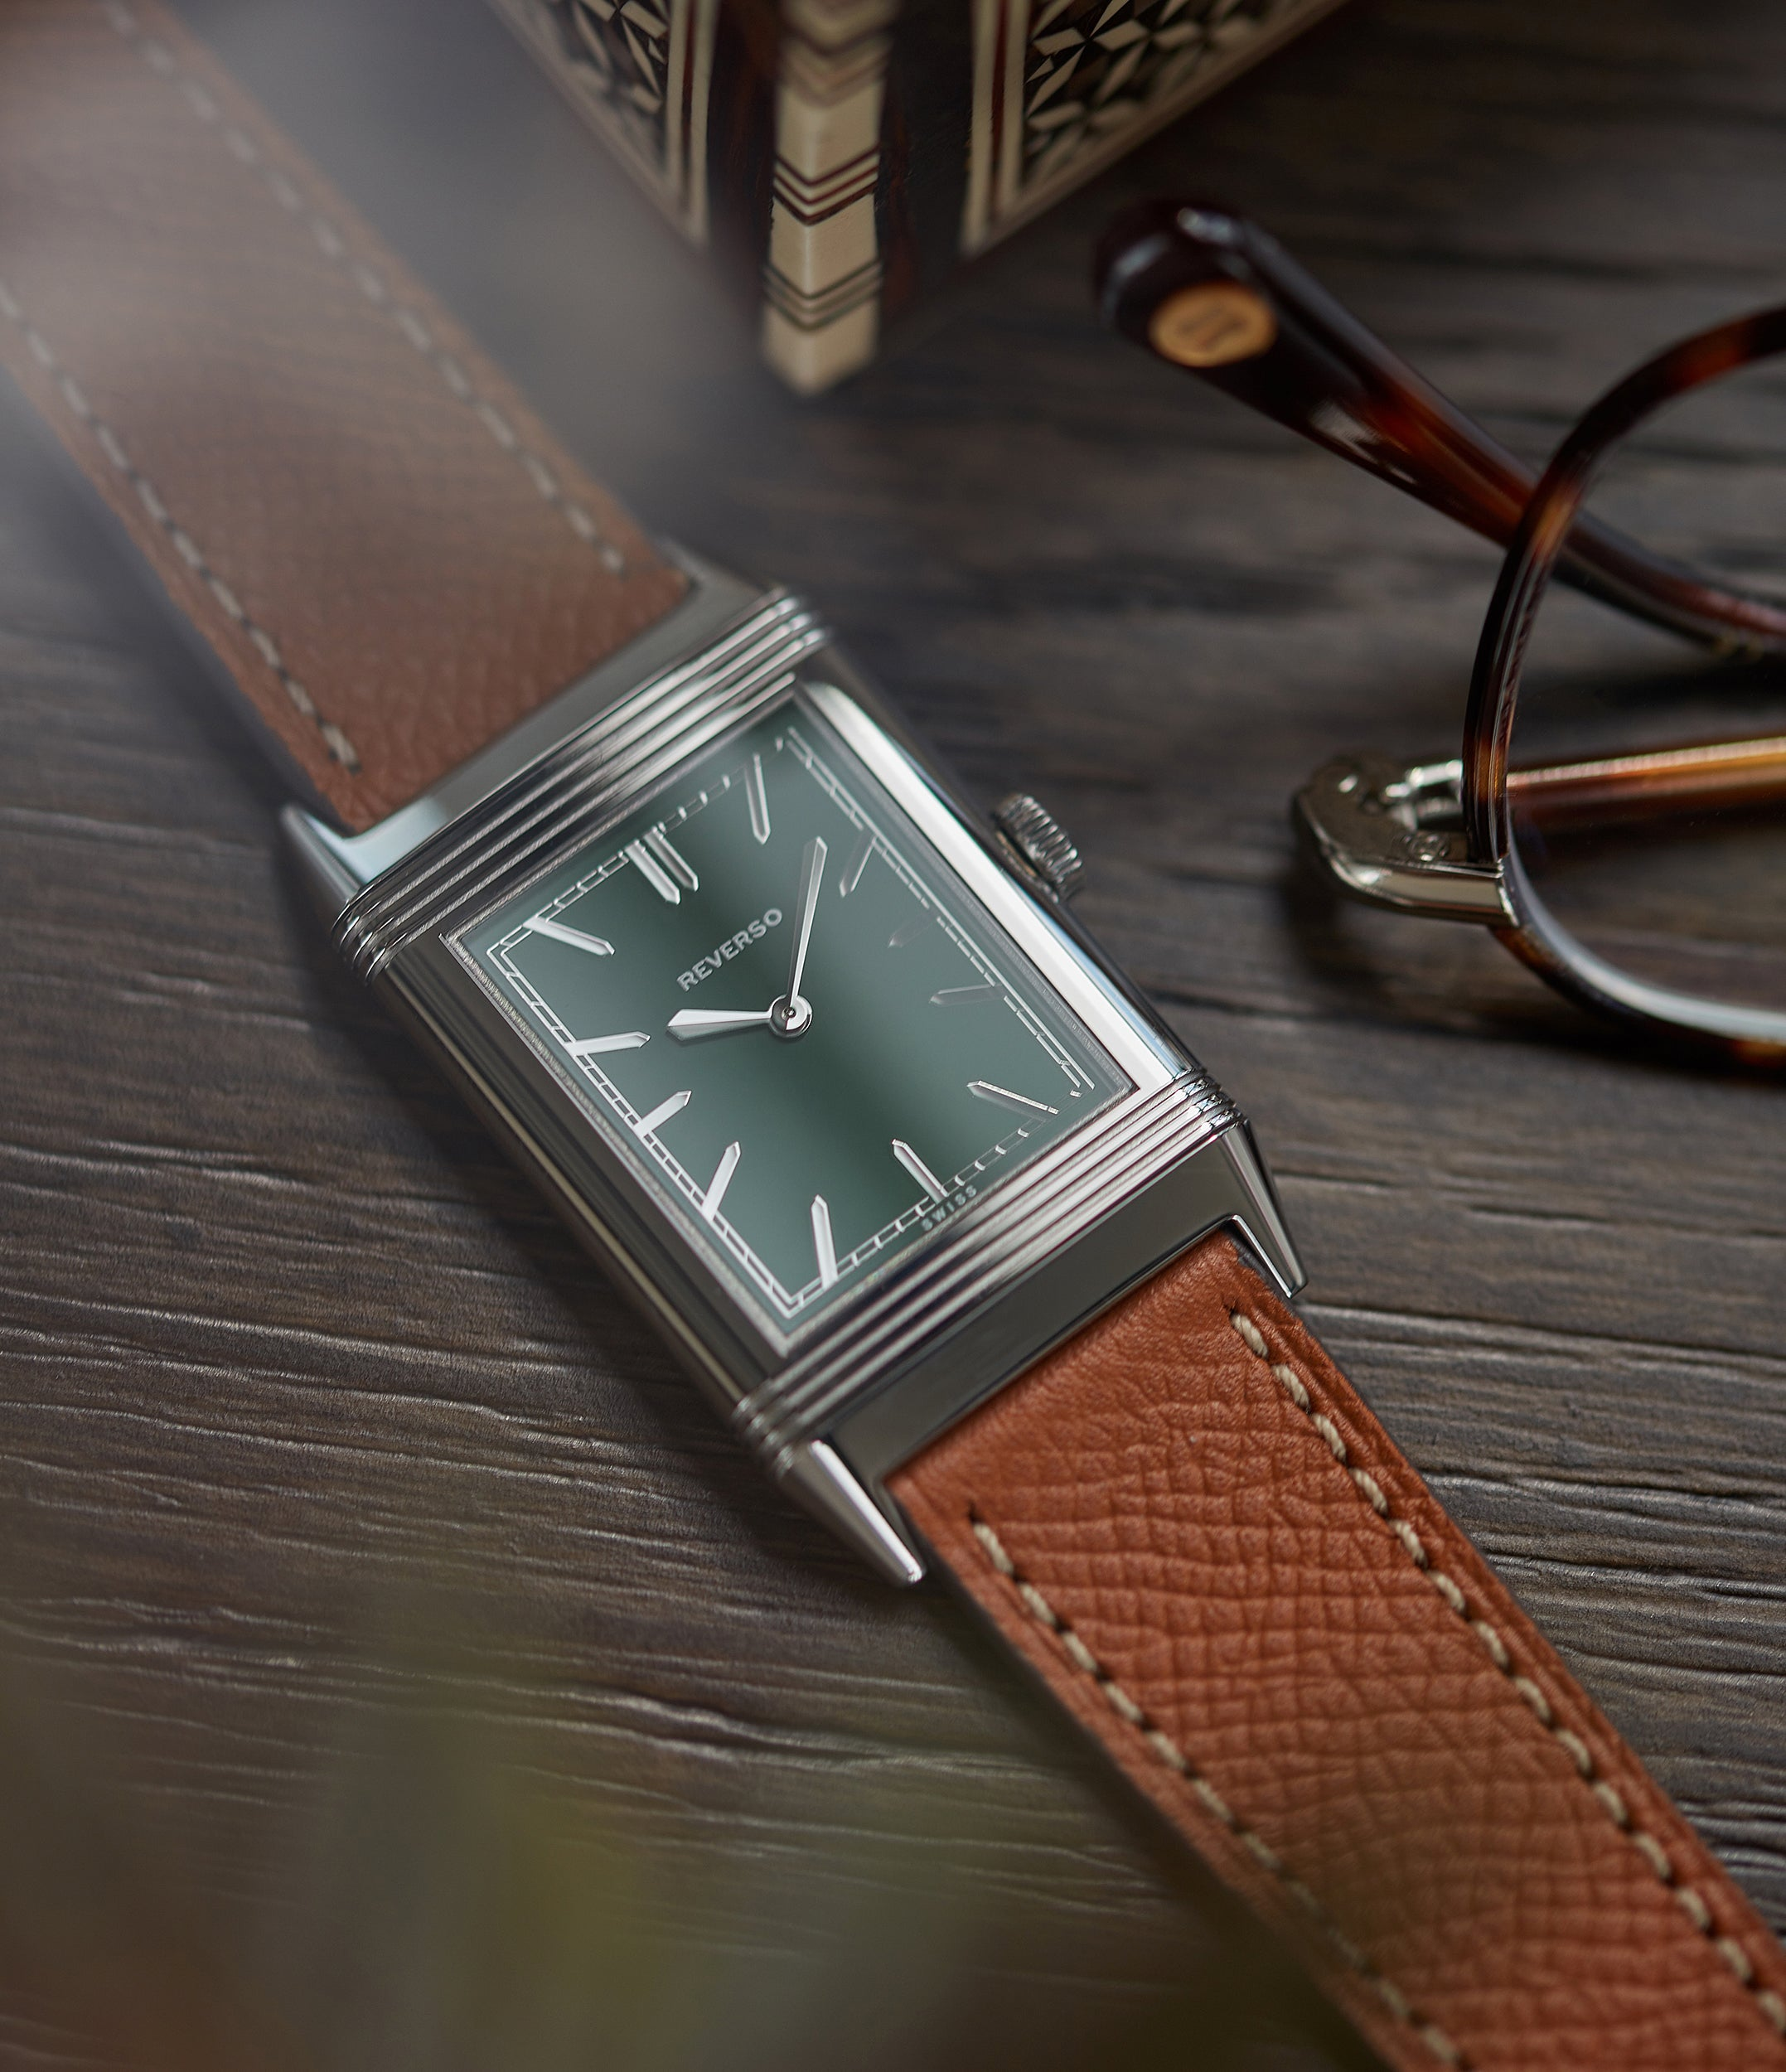 purchase Jaeger-LeCoultre Grand Reverso 1931 Green London Flagship pre-owned special edition